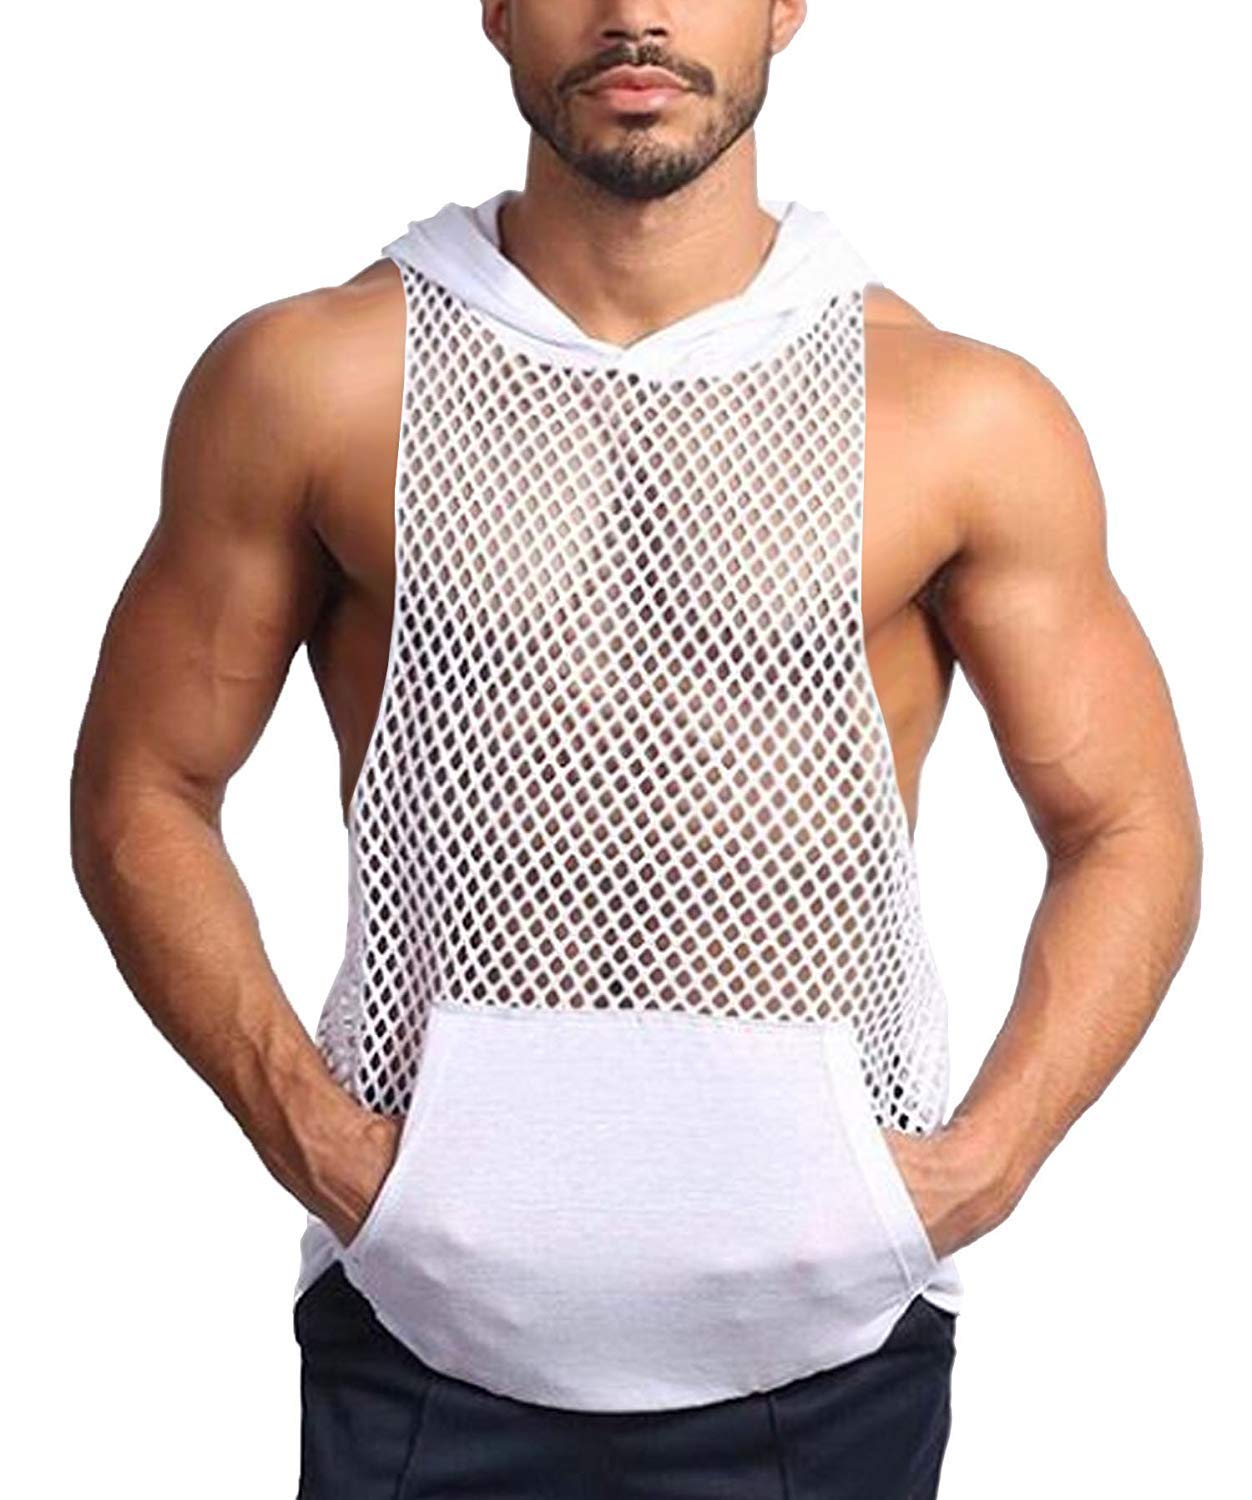 COOFANDY Mens Long Sleeves Muscle See Through Sexy Mesh Transparent Shirt with Hoodie,White2,Small by COOFANDY